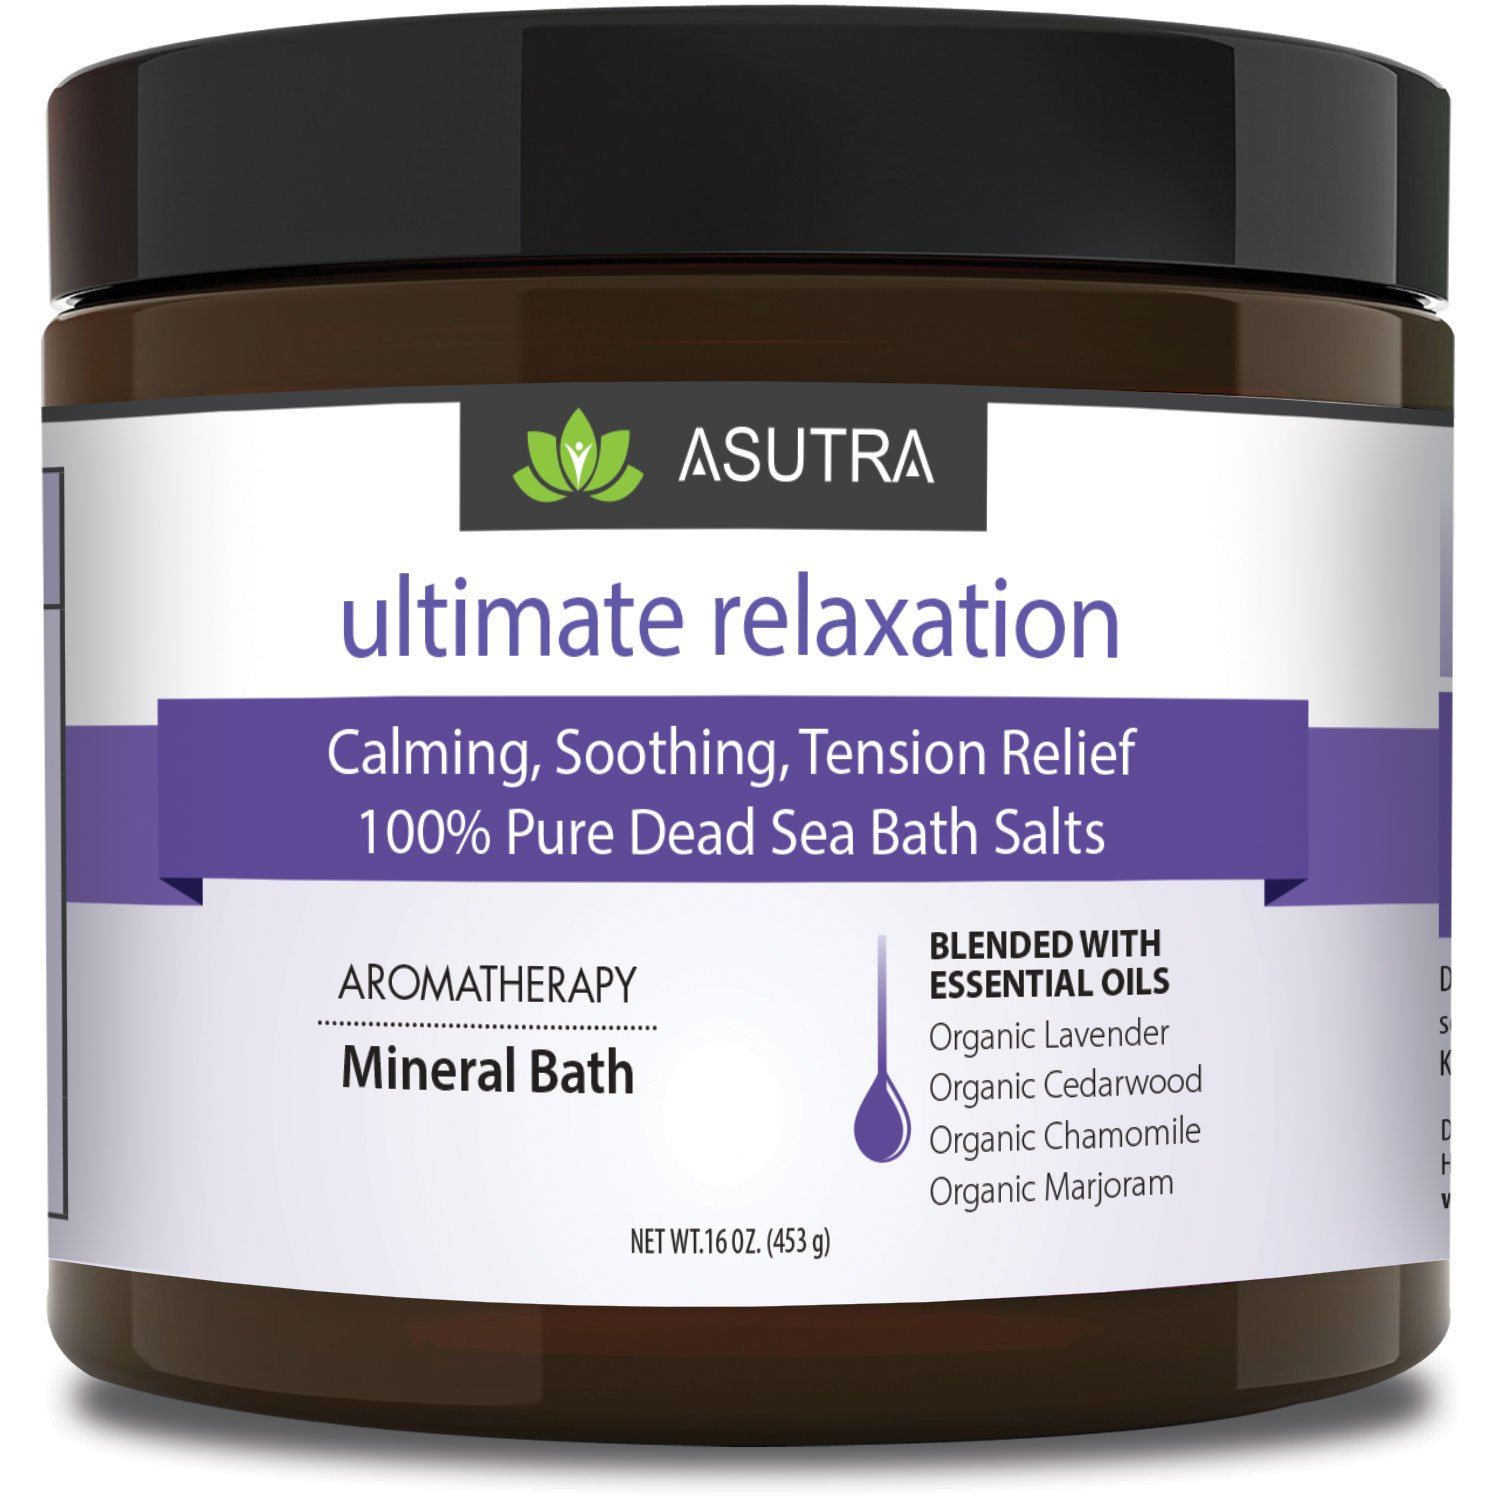 ASUTRA ULTIMATE RELAXATION - 100% Pure Dead Sea Bath Salts - Melt Tension Away - Organic Cedarwood, Chamomile, Lavender, Marjoram Essential Oils, Rich in Healing Minerals. 16oz